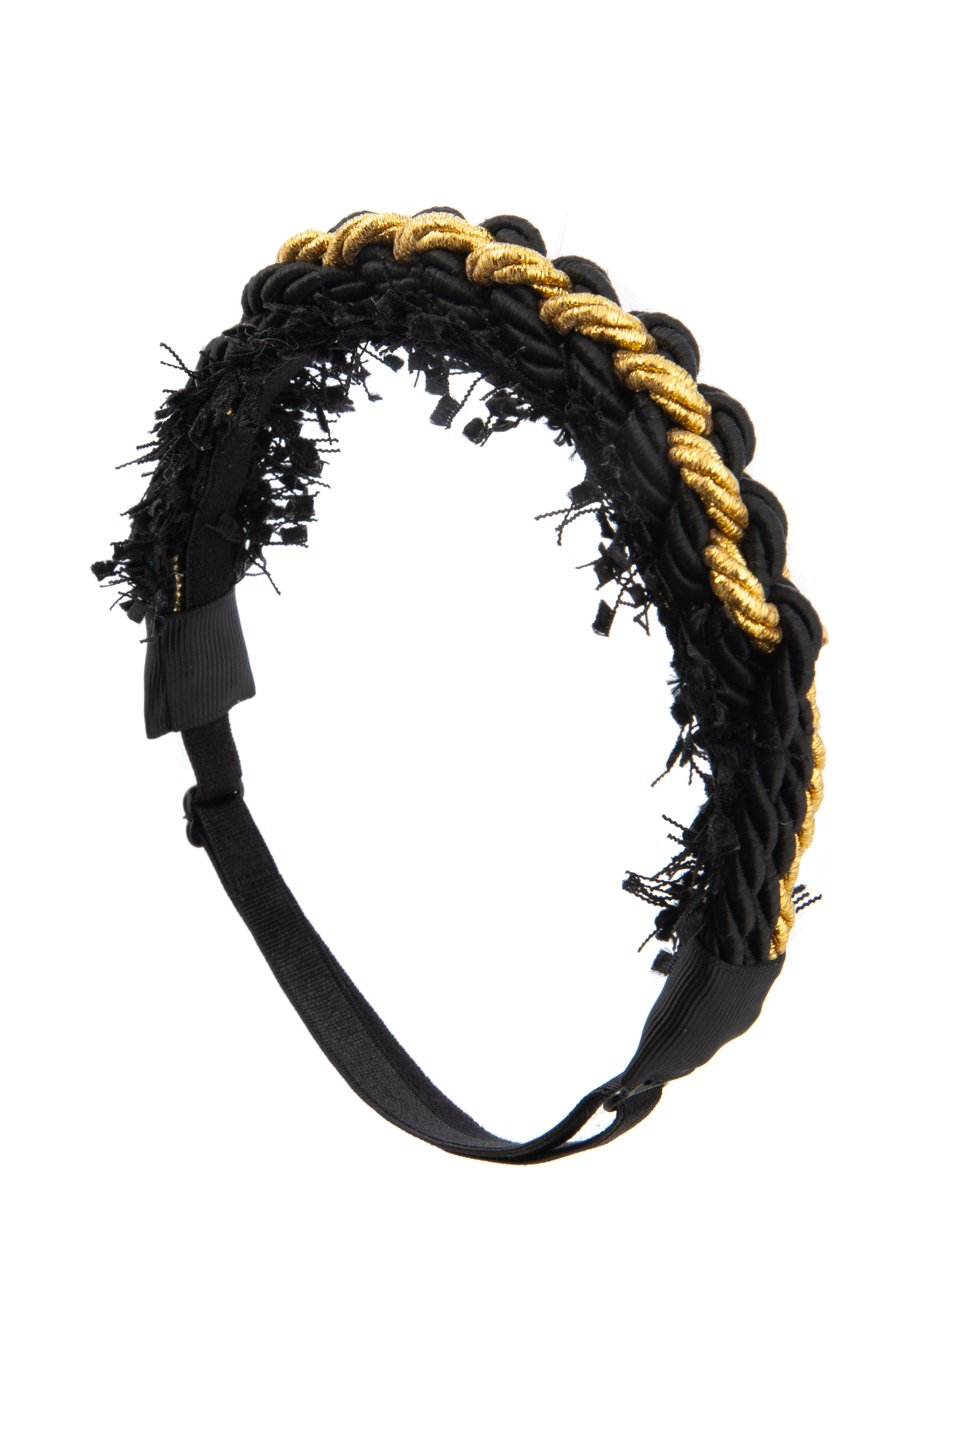 All Roped In Wrap-Black/Gold - PROJECT 6, modest fashion